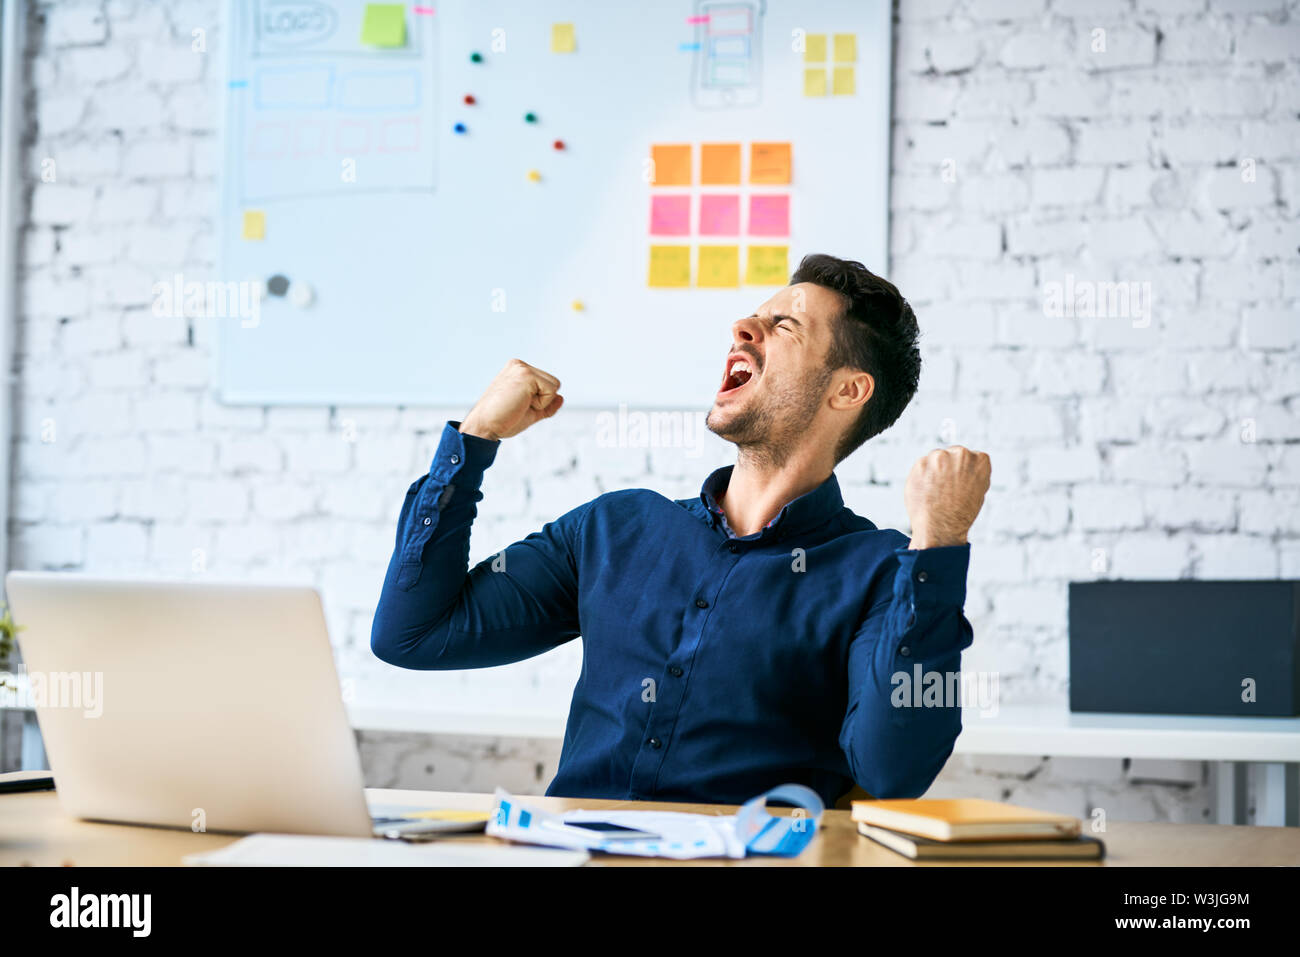 Ecstatic web developer screaming in joy and making gestures celebrating success while sitting in office - Stock Image